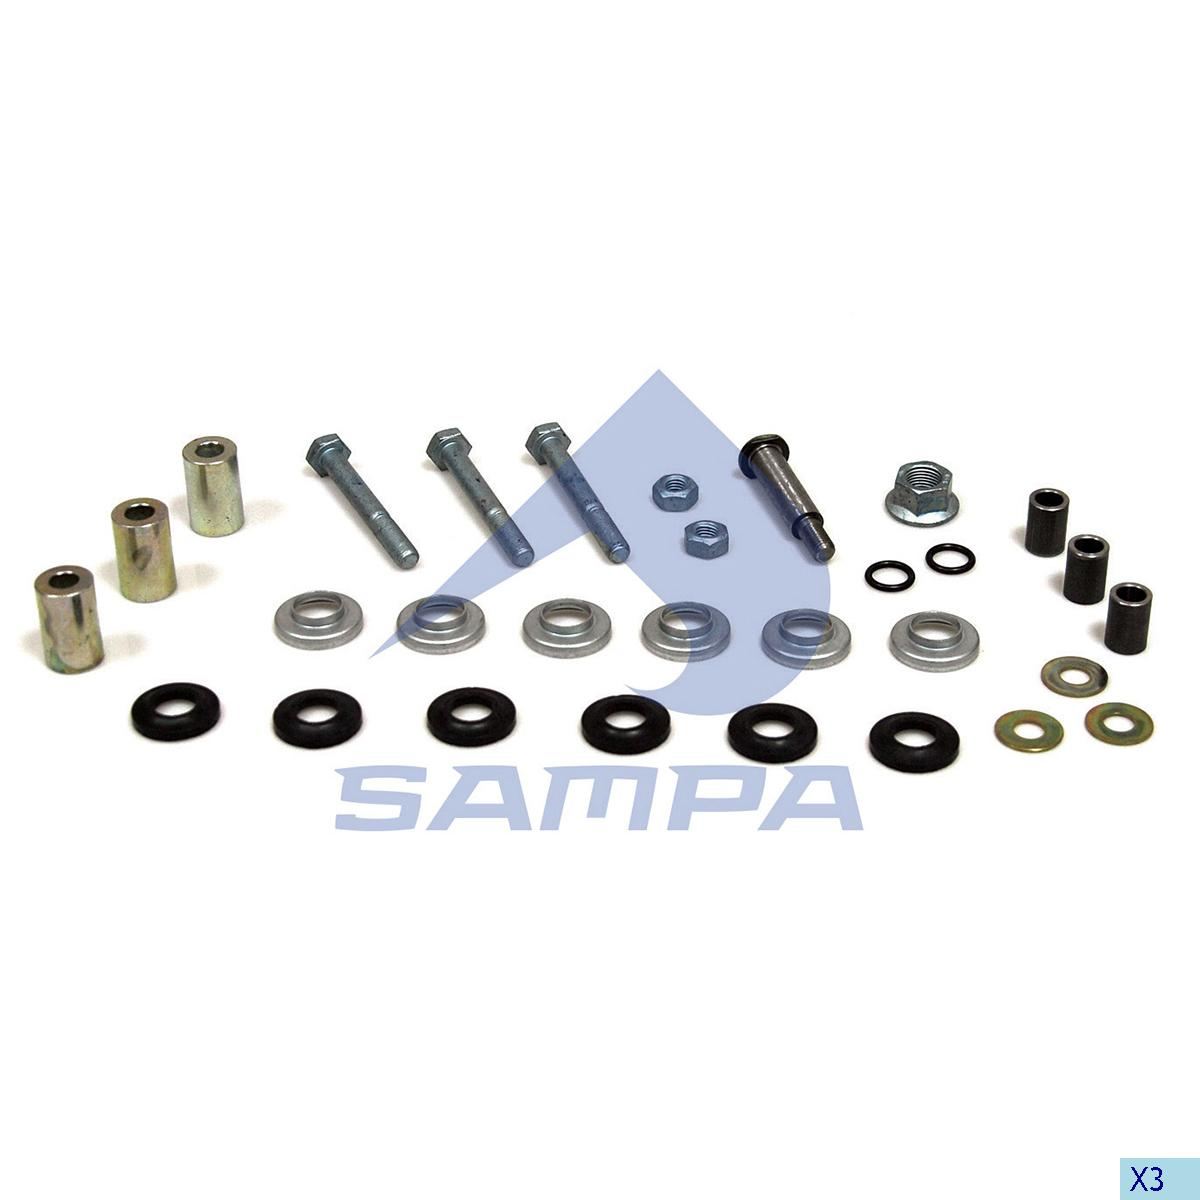 Repair Kit, Gear Shift, Man, Gear Box